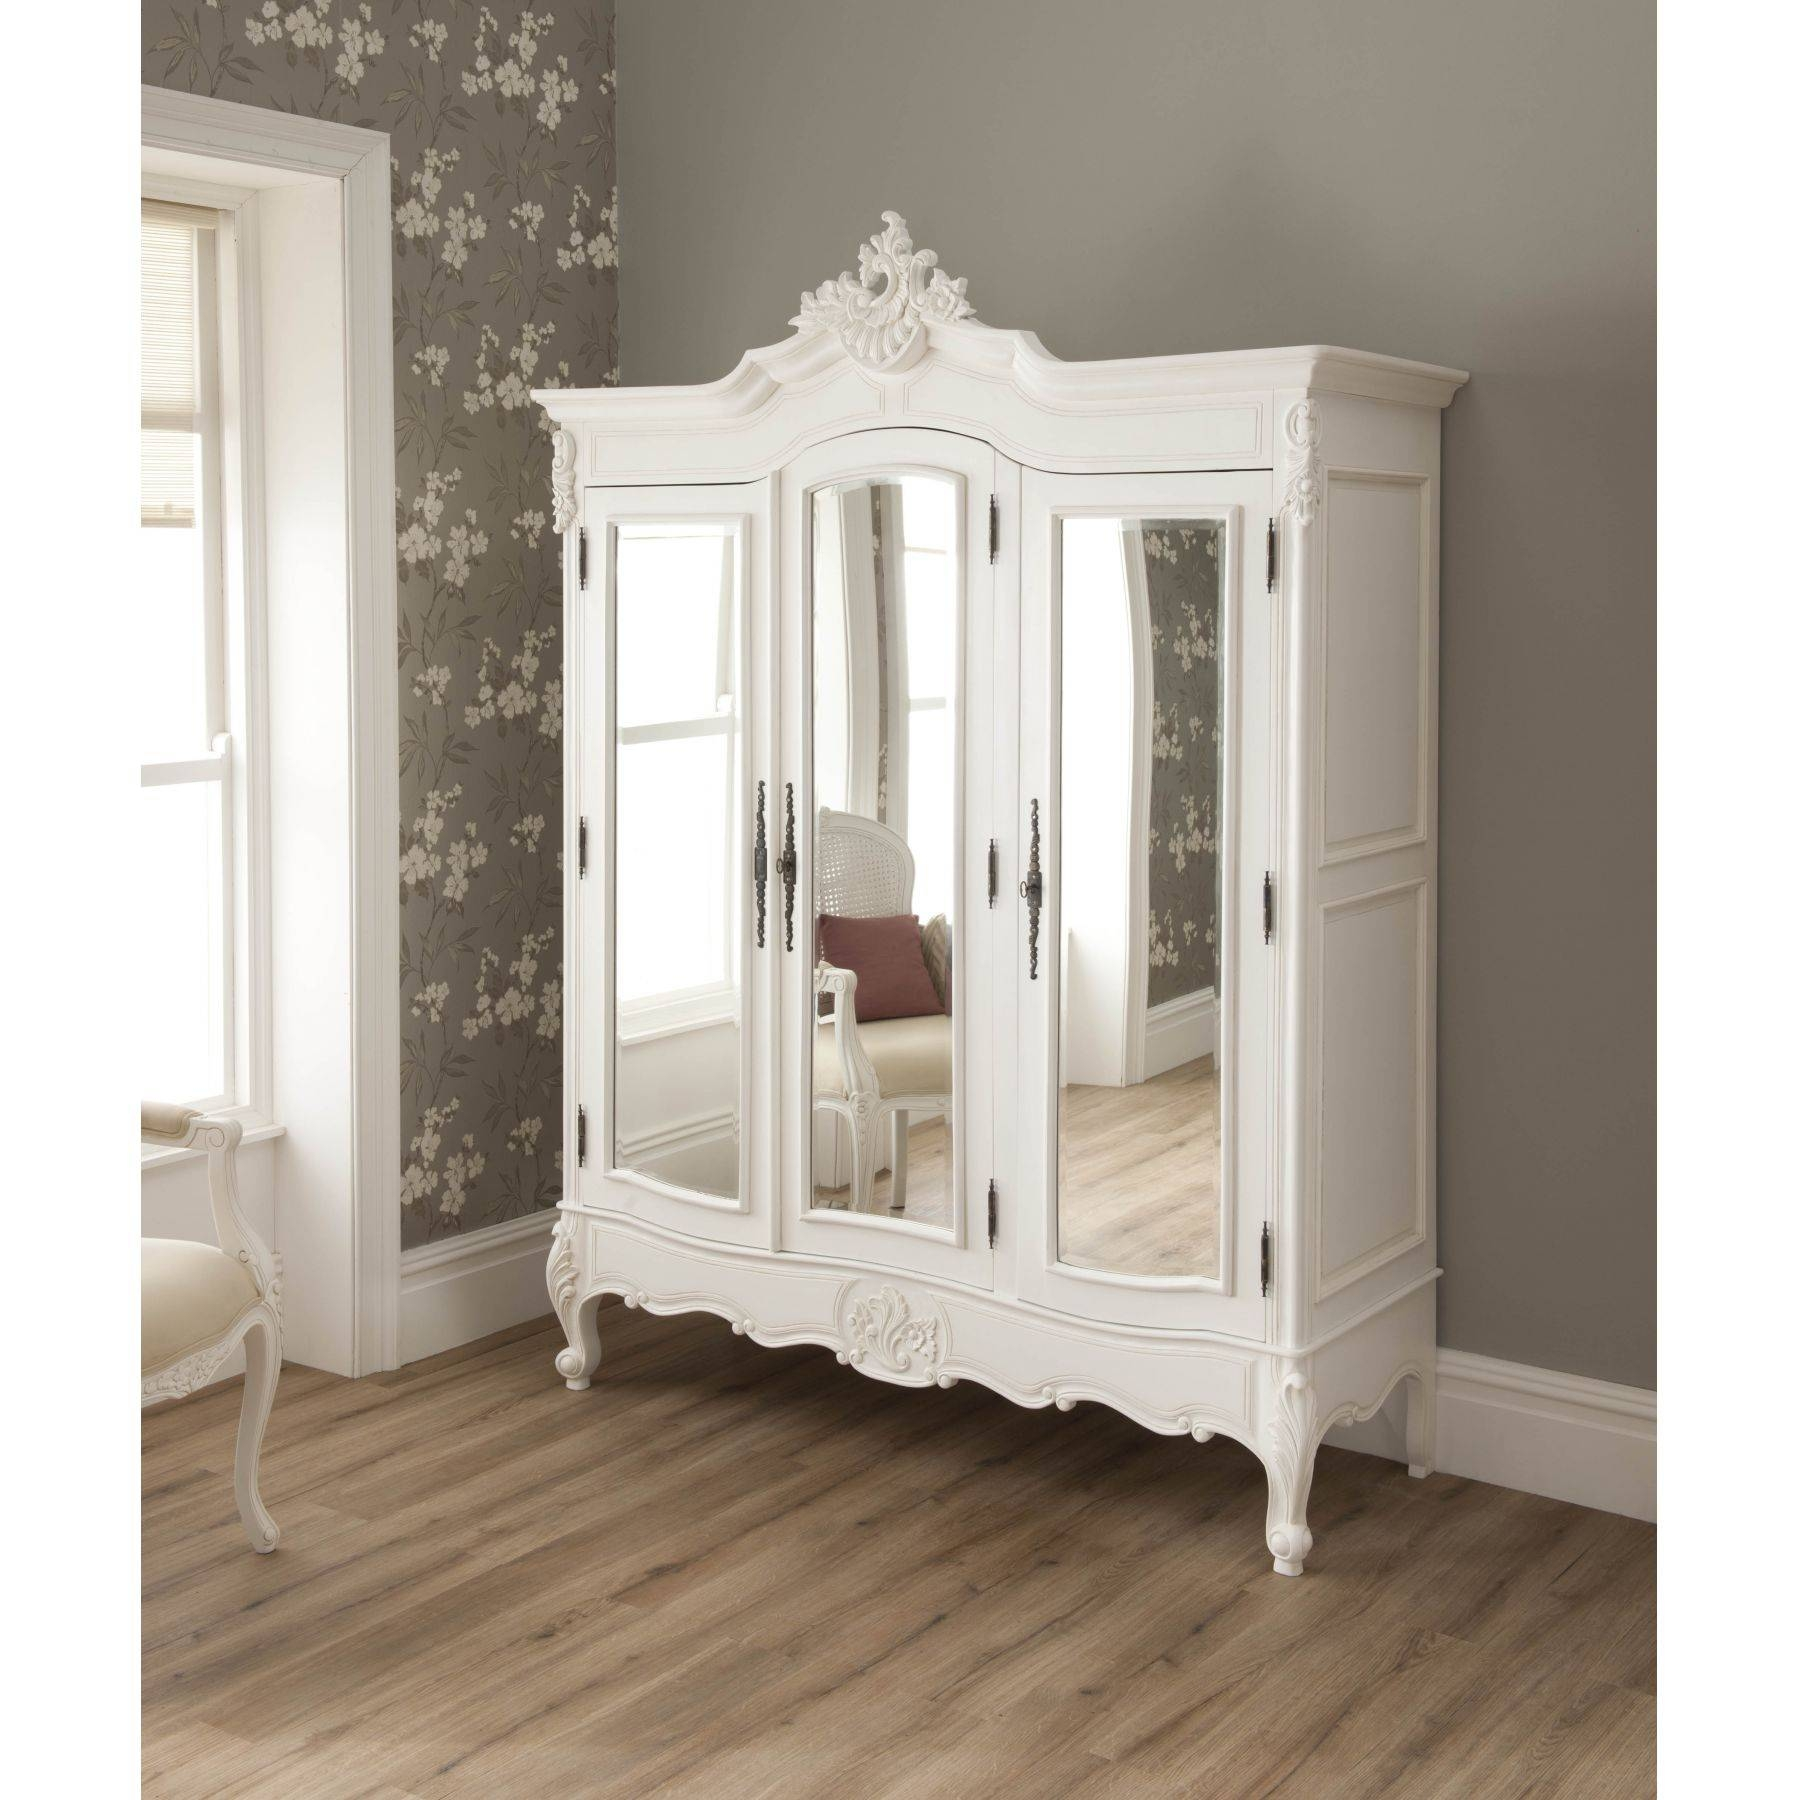 La Rochelle Shabby Chic Antique Style Wardrobe | Shabby Chic Furniture for Ornate Wardrobes (Image 7 of 15)